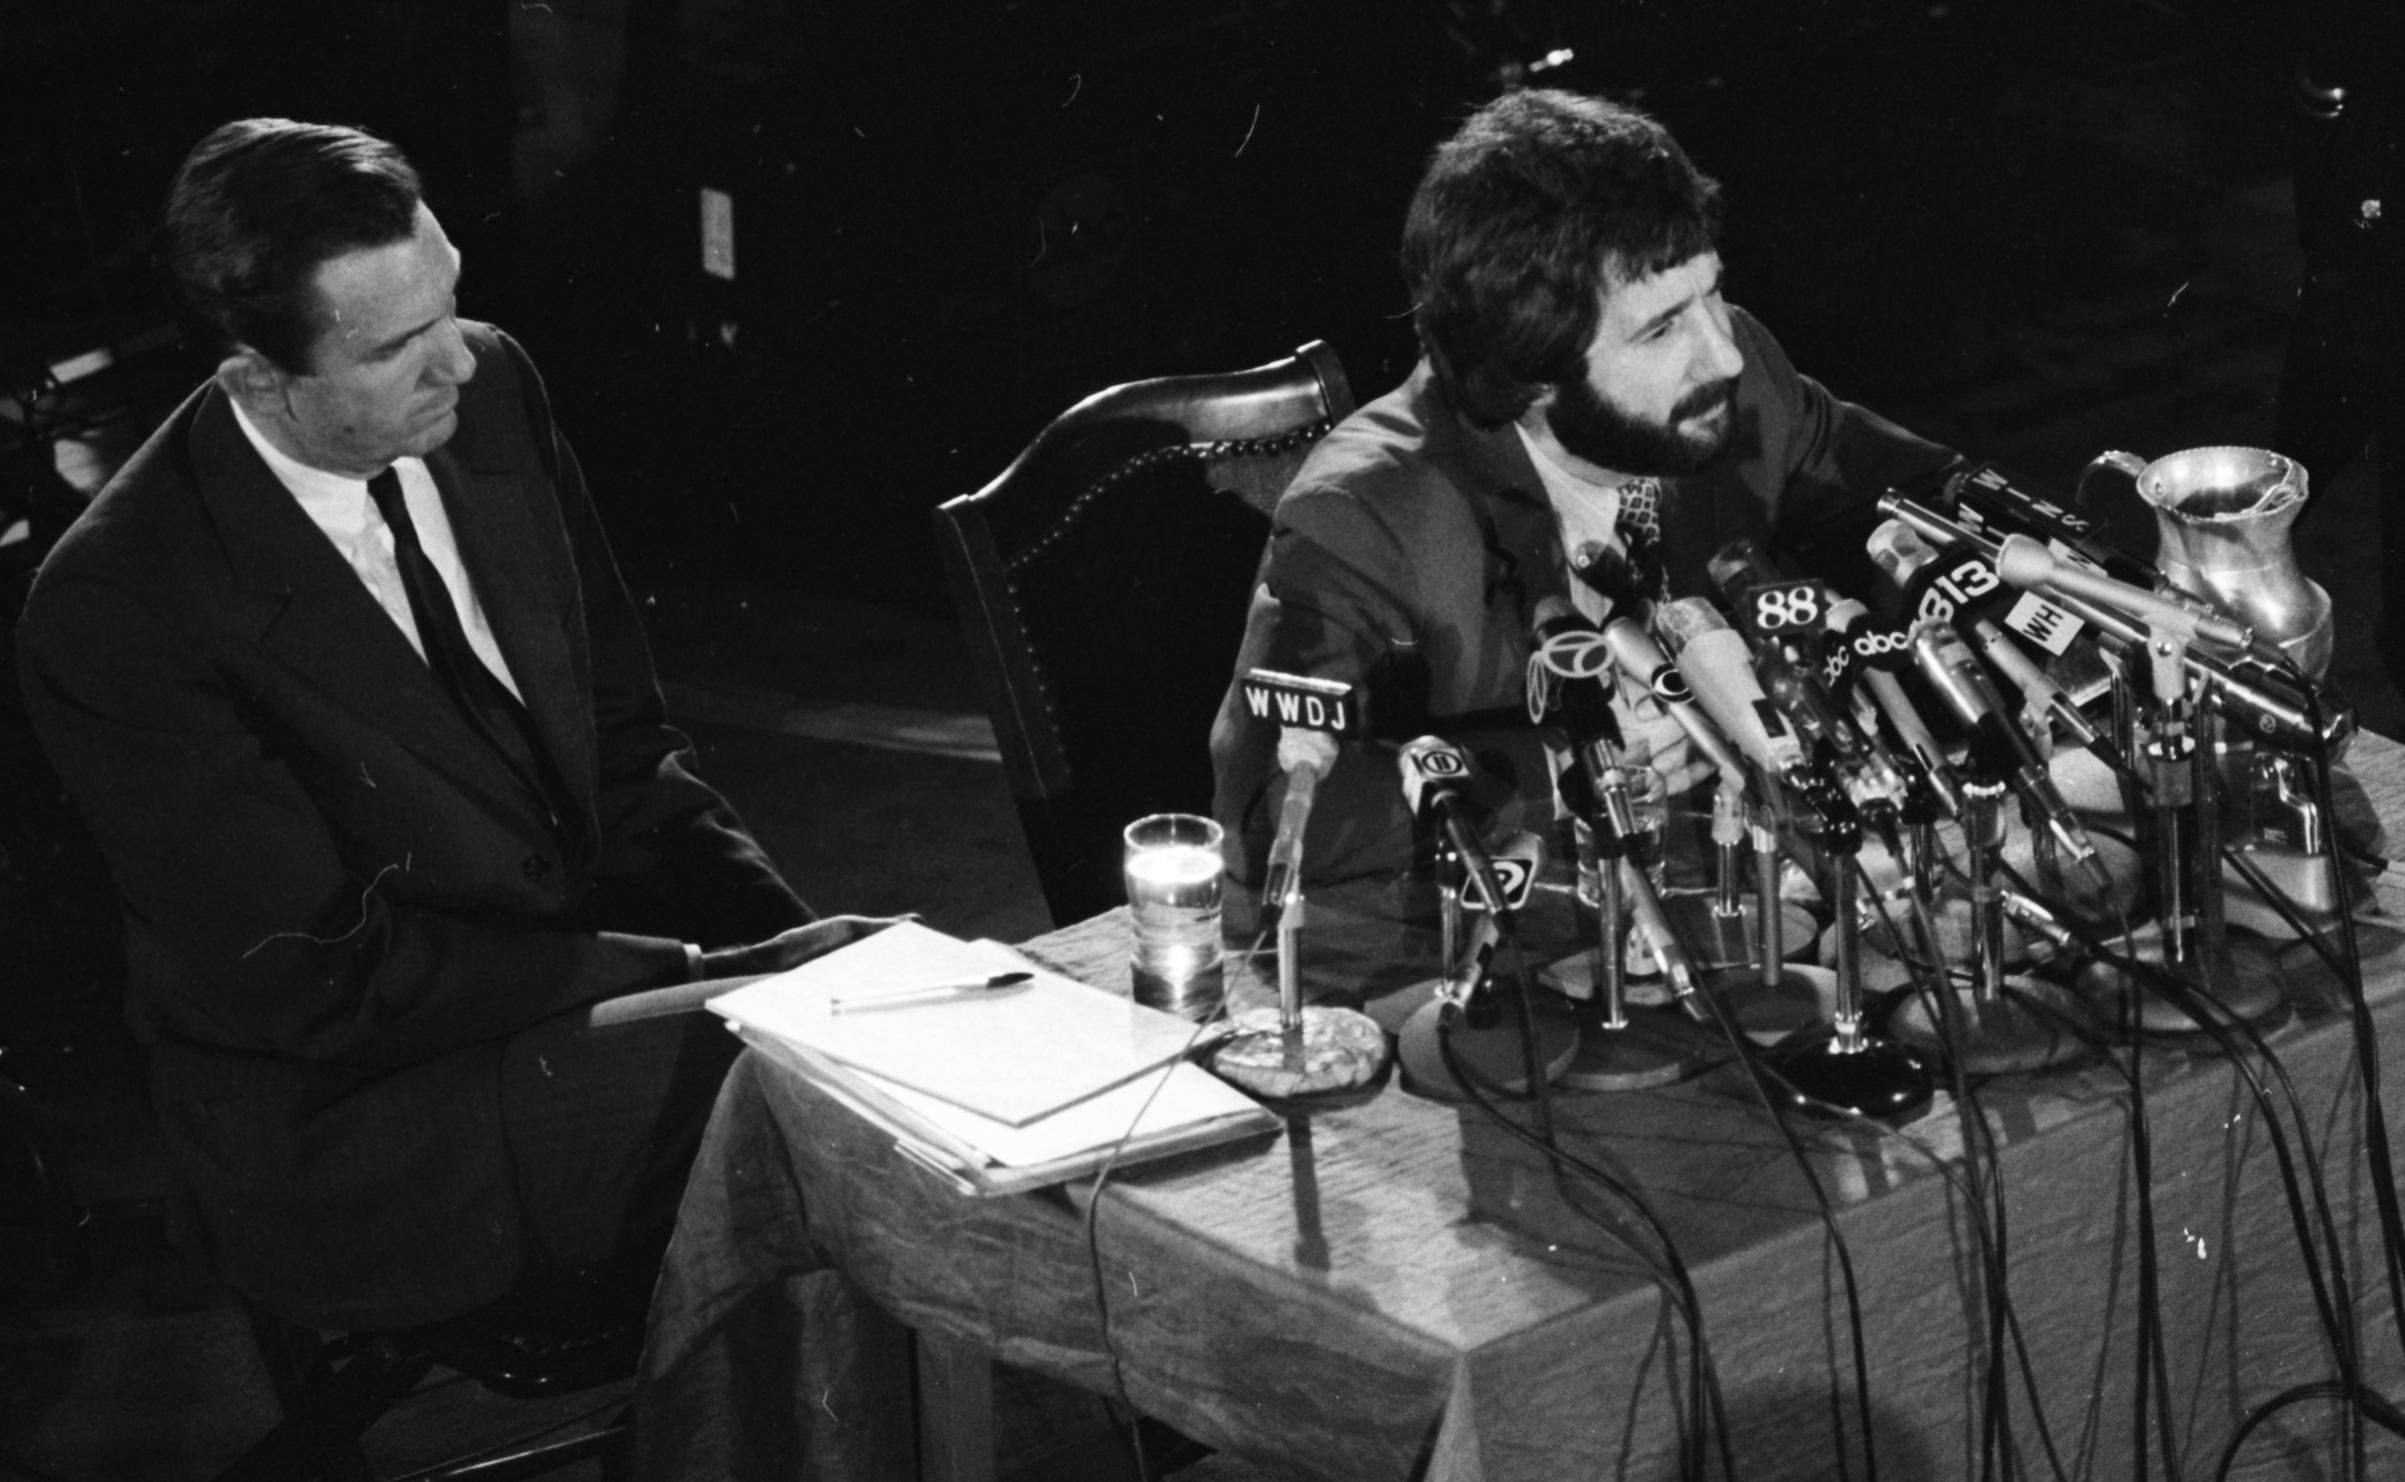 Frank Serpico testifies in 1971